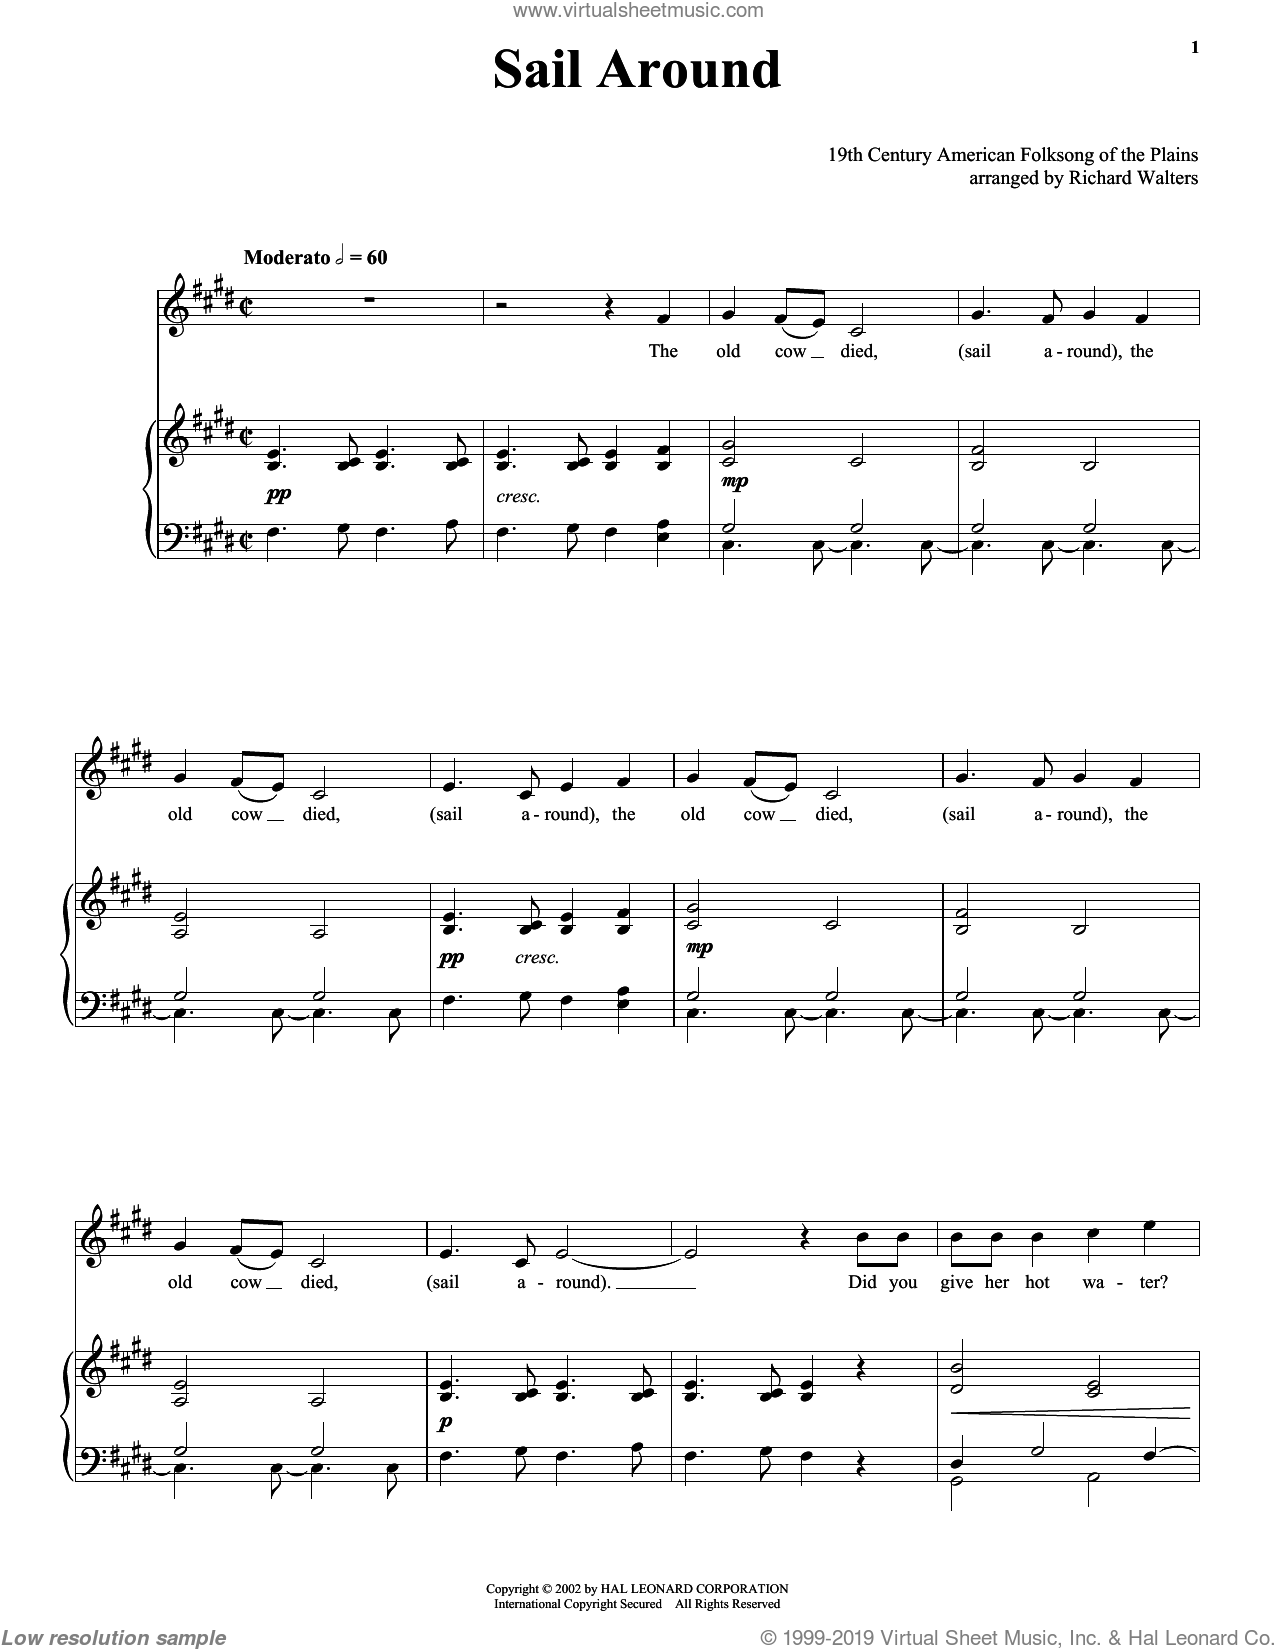 Sail Around sheet music for voice and piano